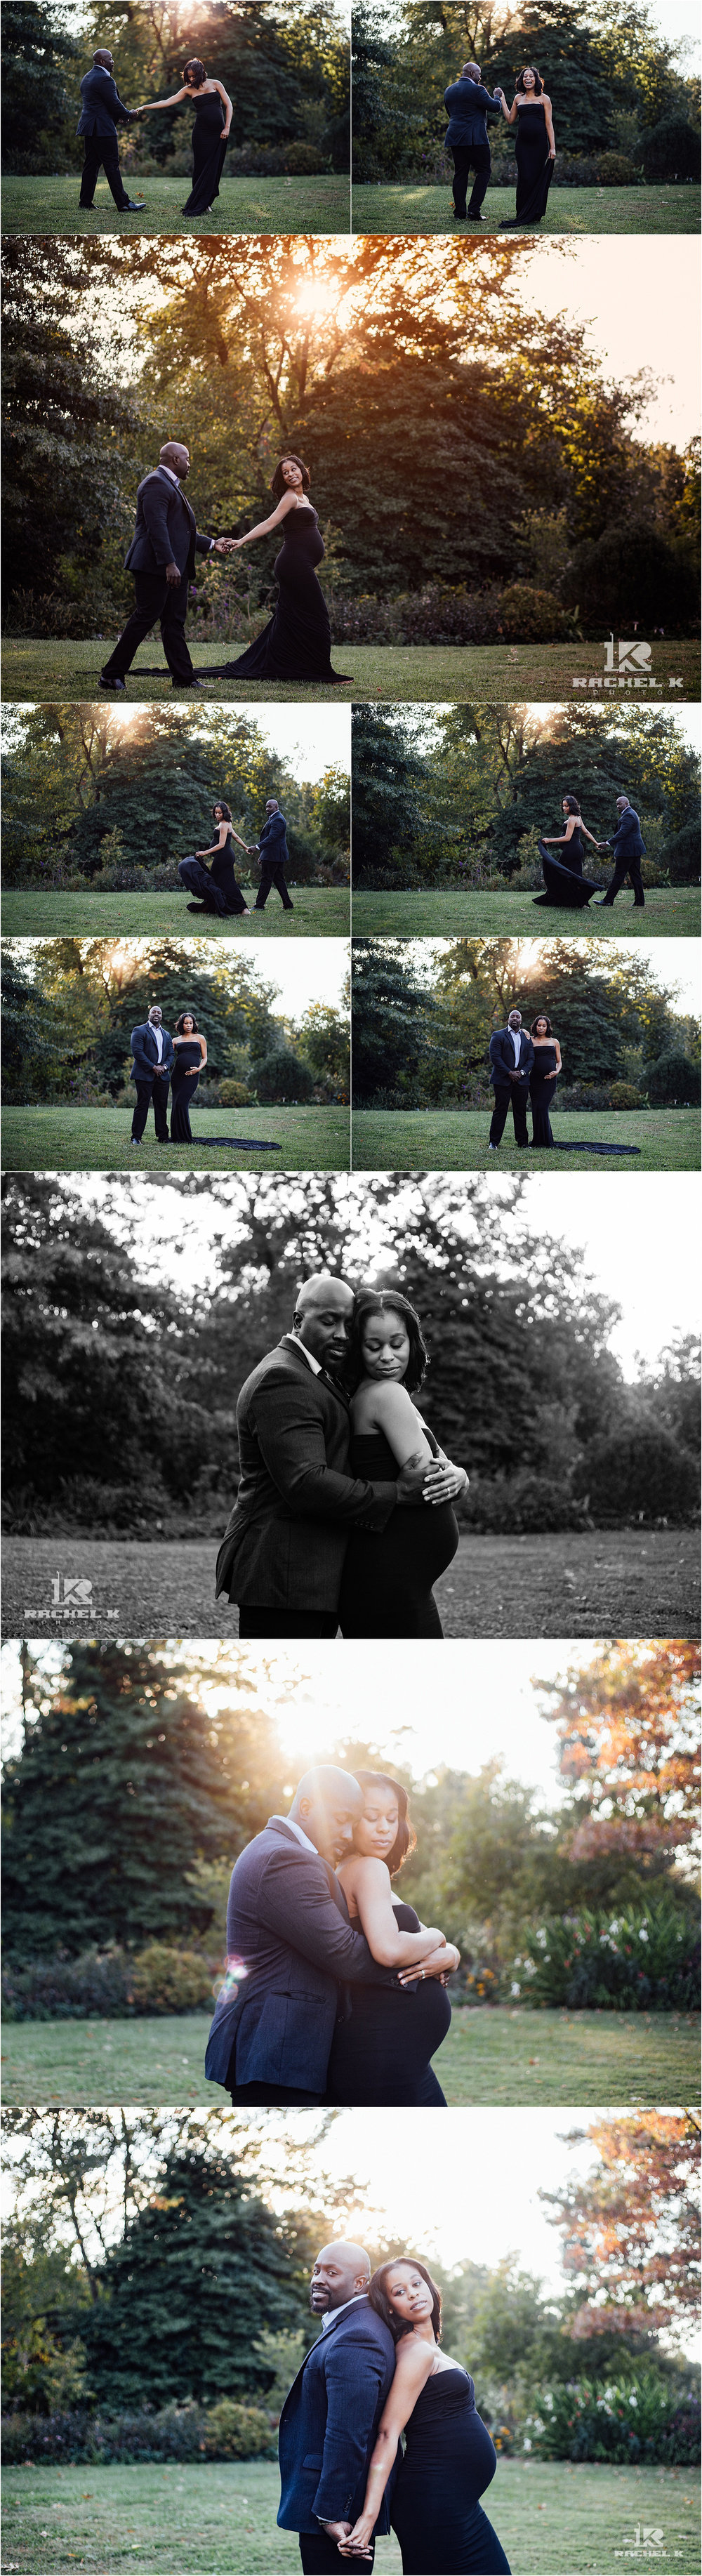 Chantilly maternity session by Rachel K Photo